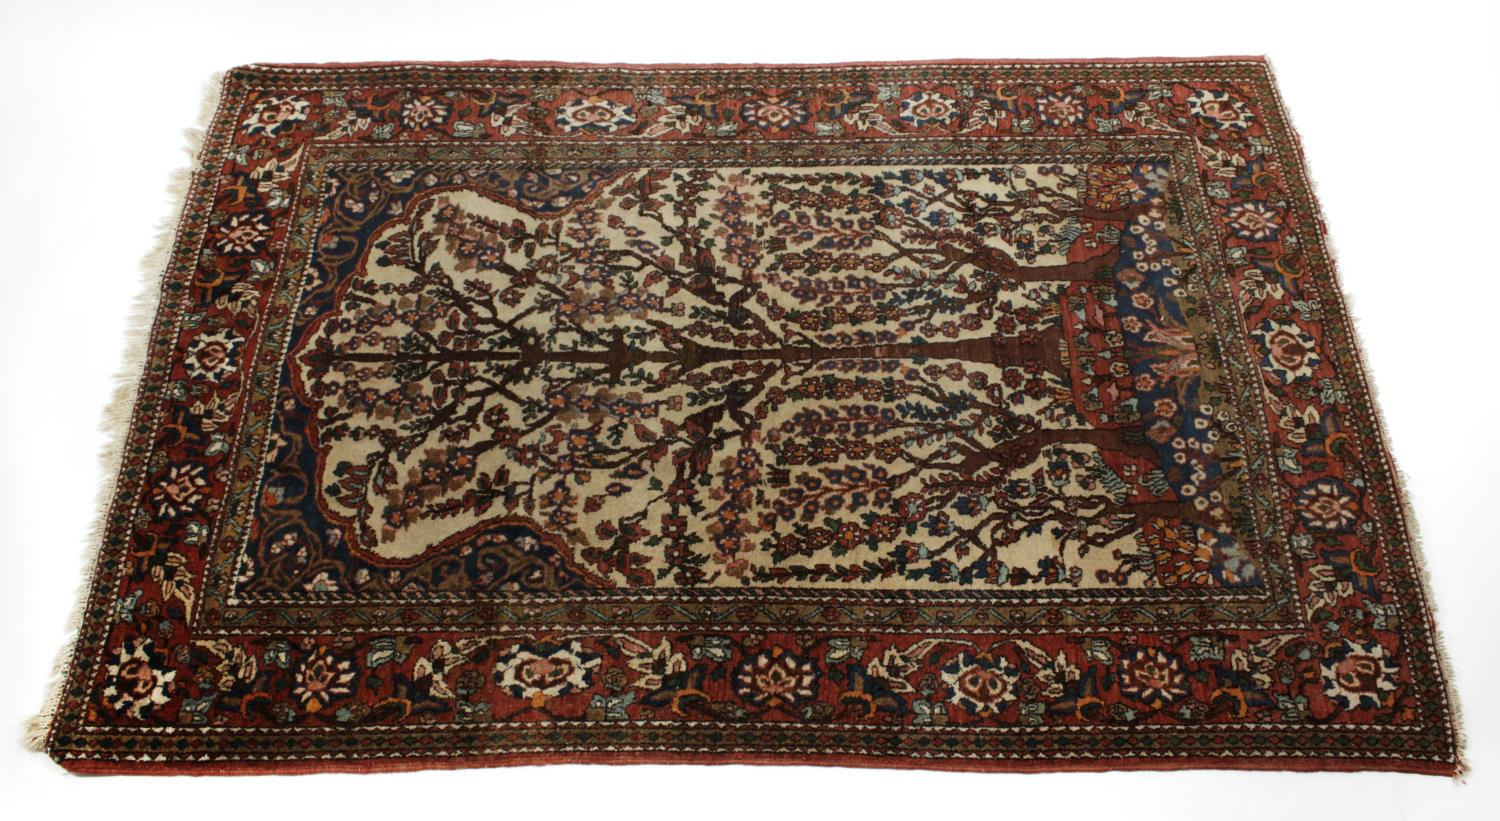 Lot 882 - An Isfahan woven wool work prayer rug,